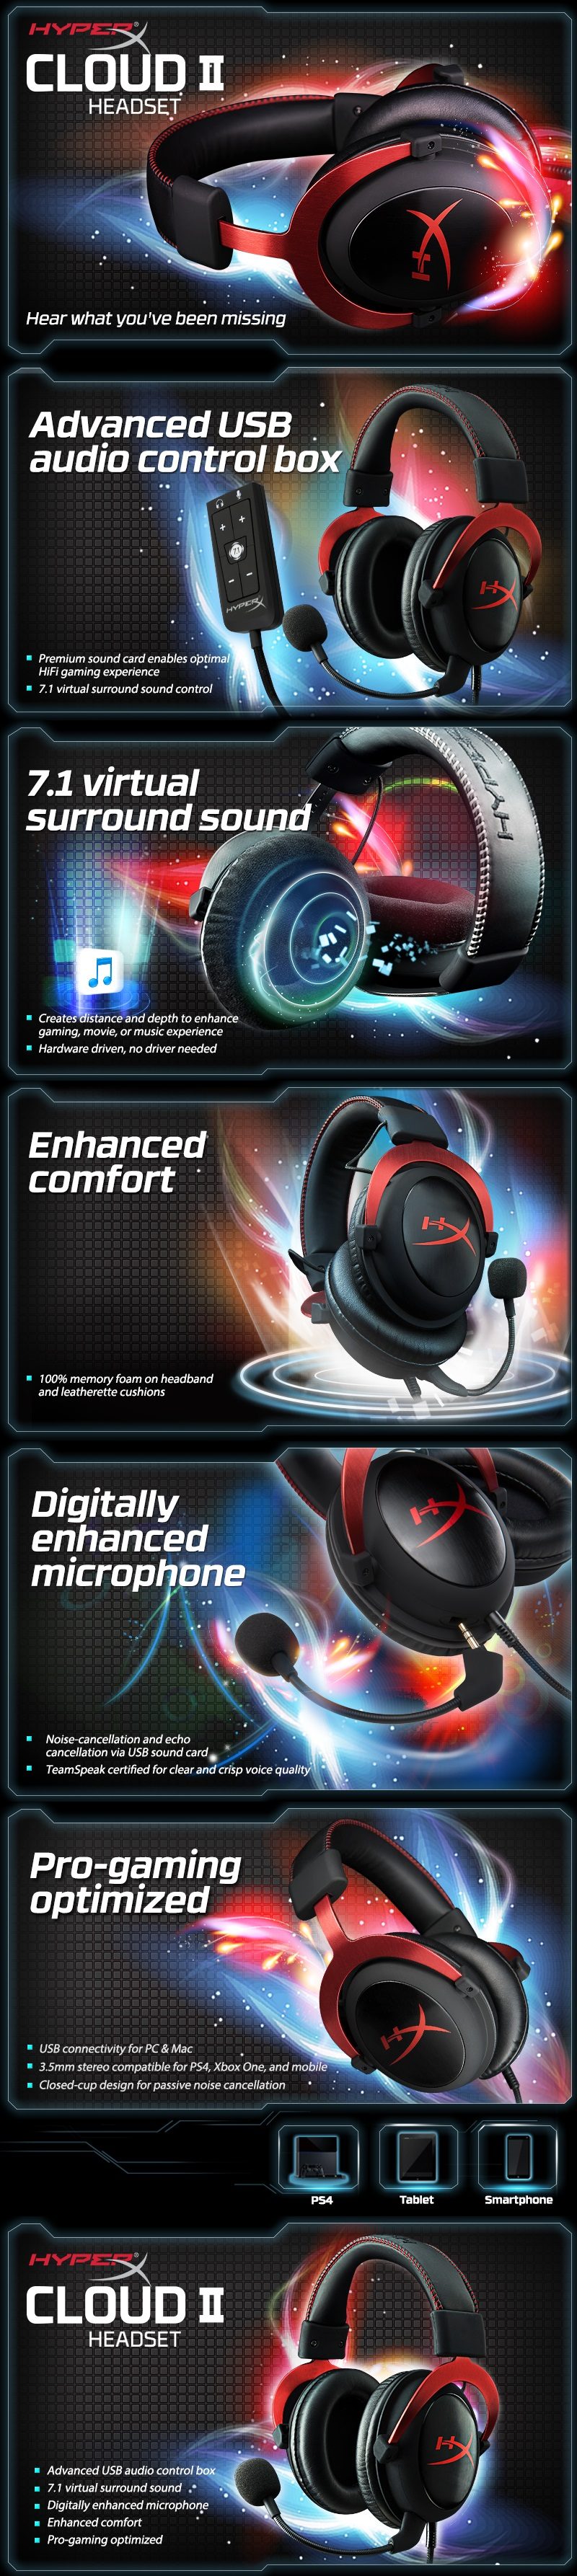 A large marketing image providing additional information about the product Kingston HyperX Cloud II Gaming Headset Gunmetal - Additional alt info not provided